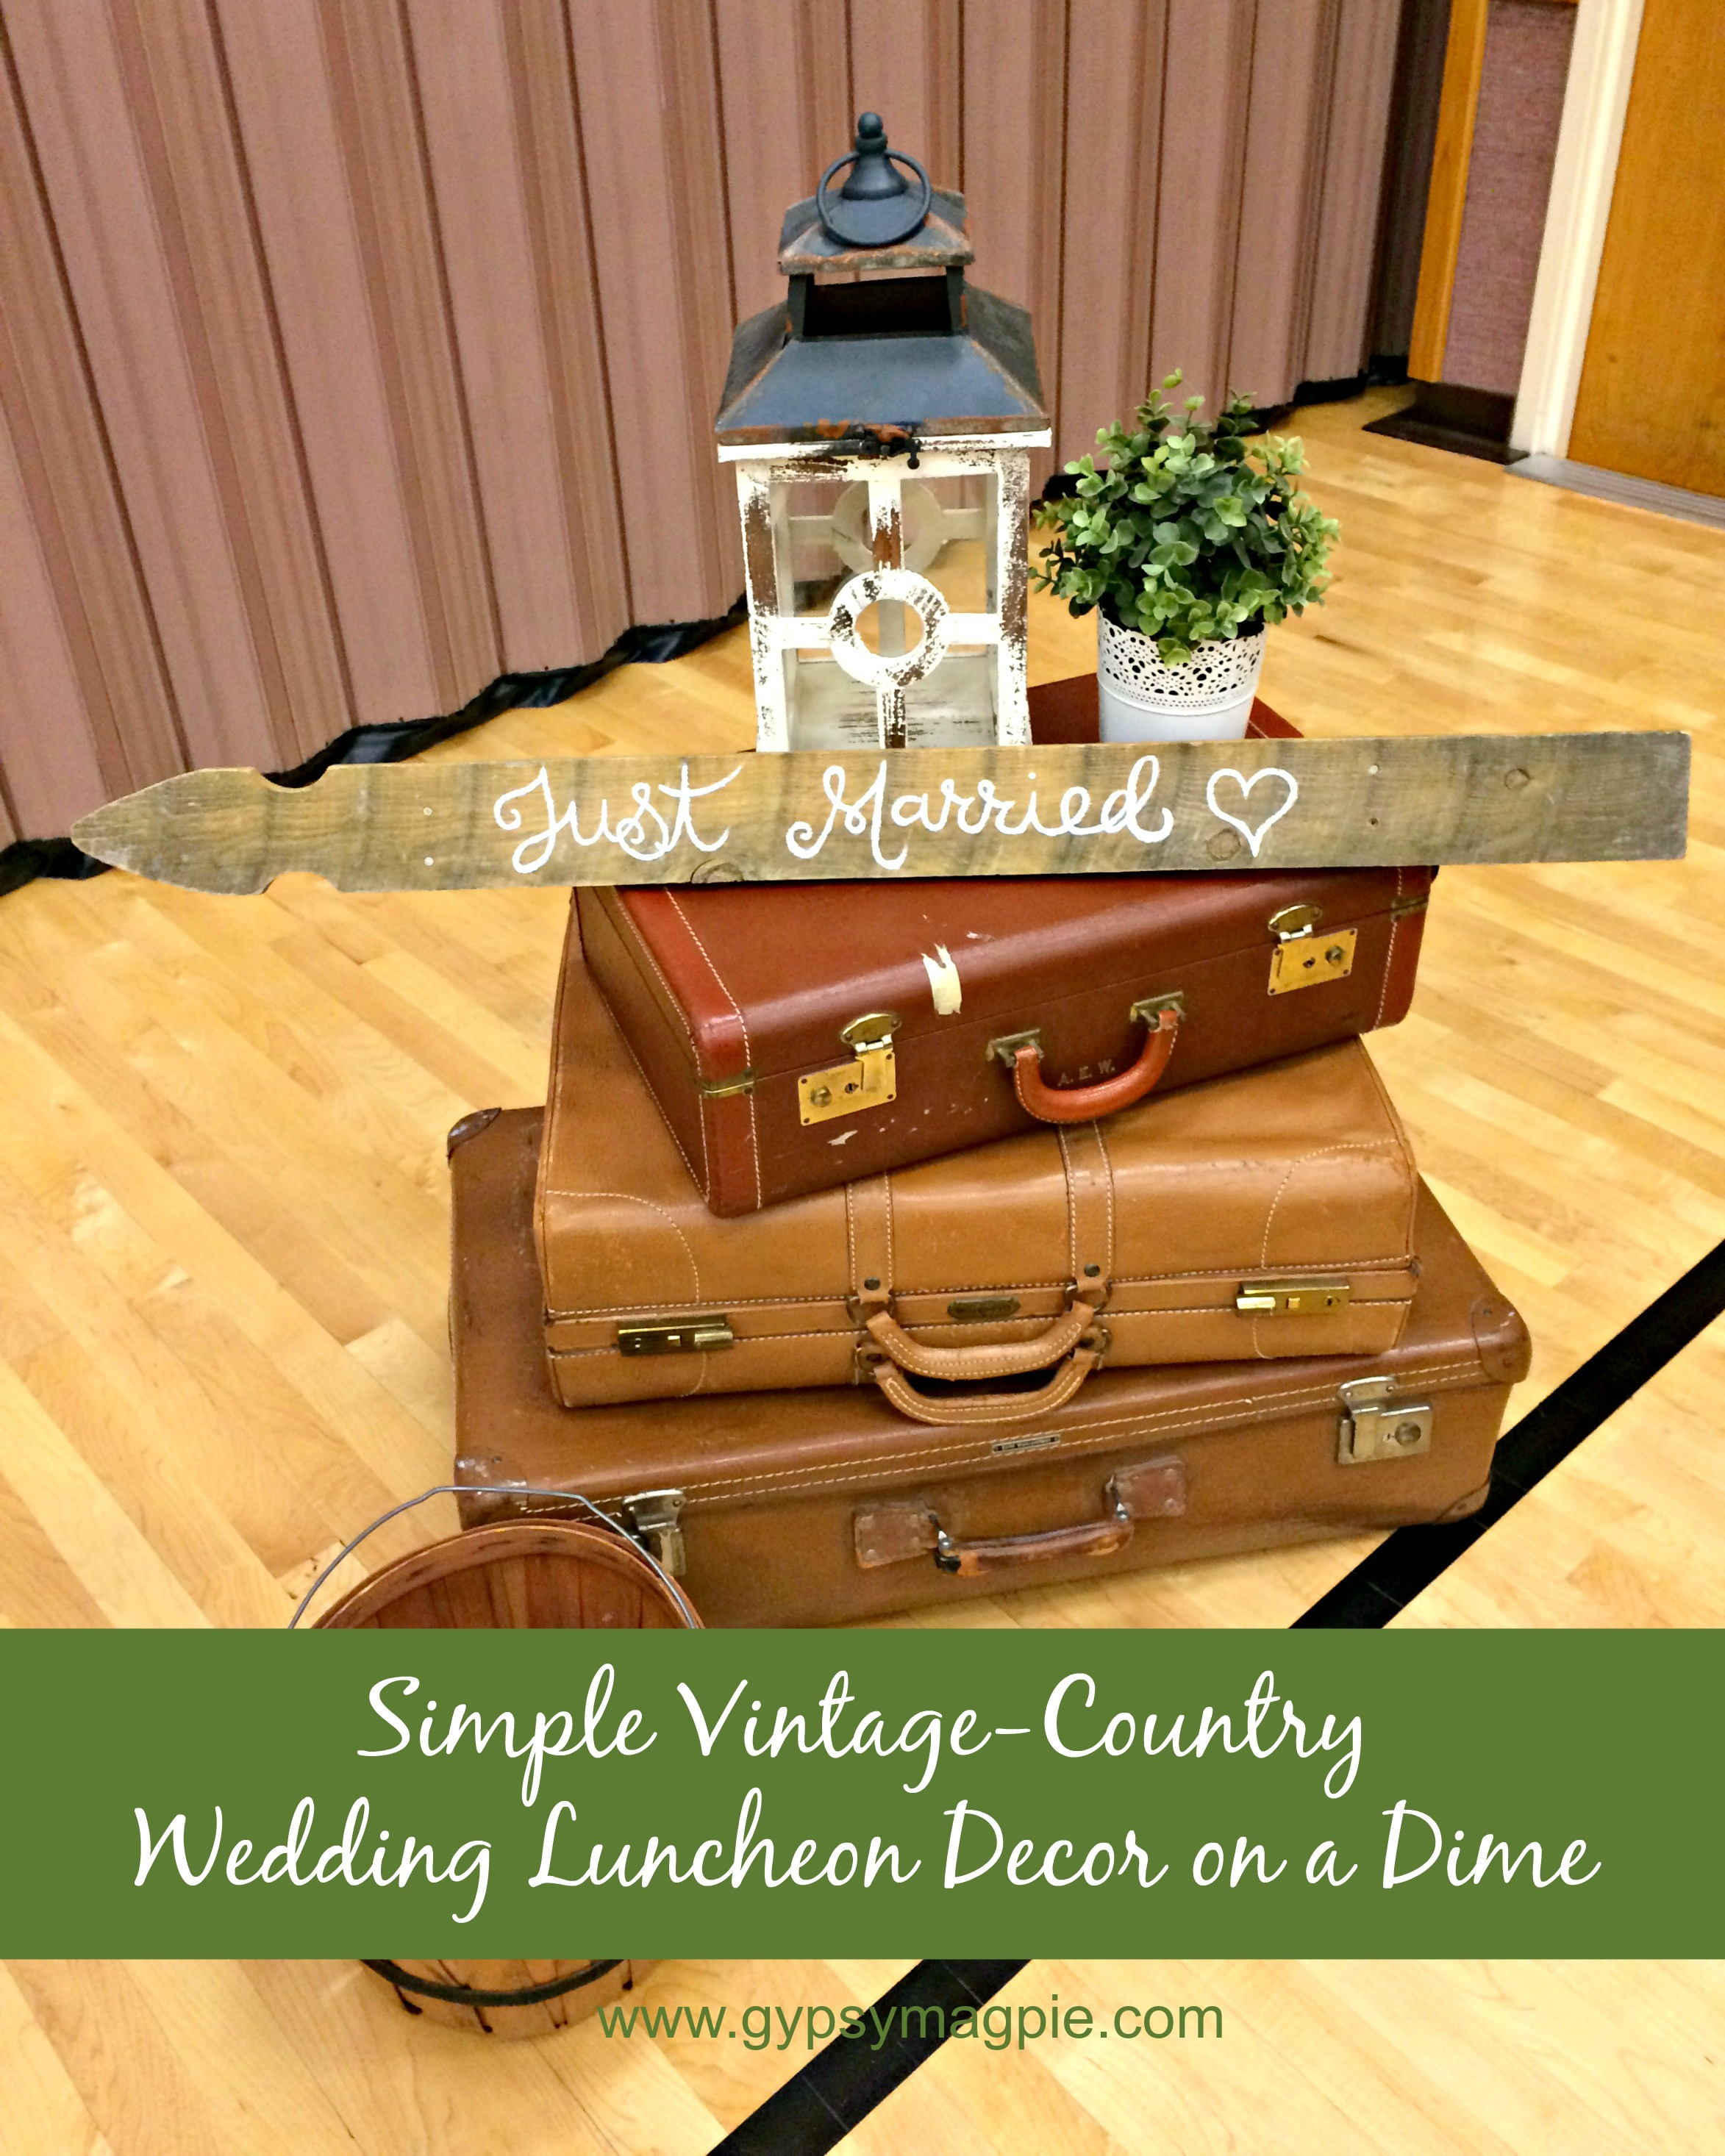 How We Decorated for a Vintage Country Wedding Luncheon on a Dime {Gypsy Magpie}